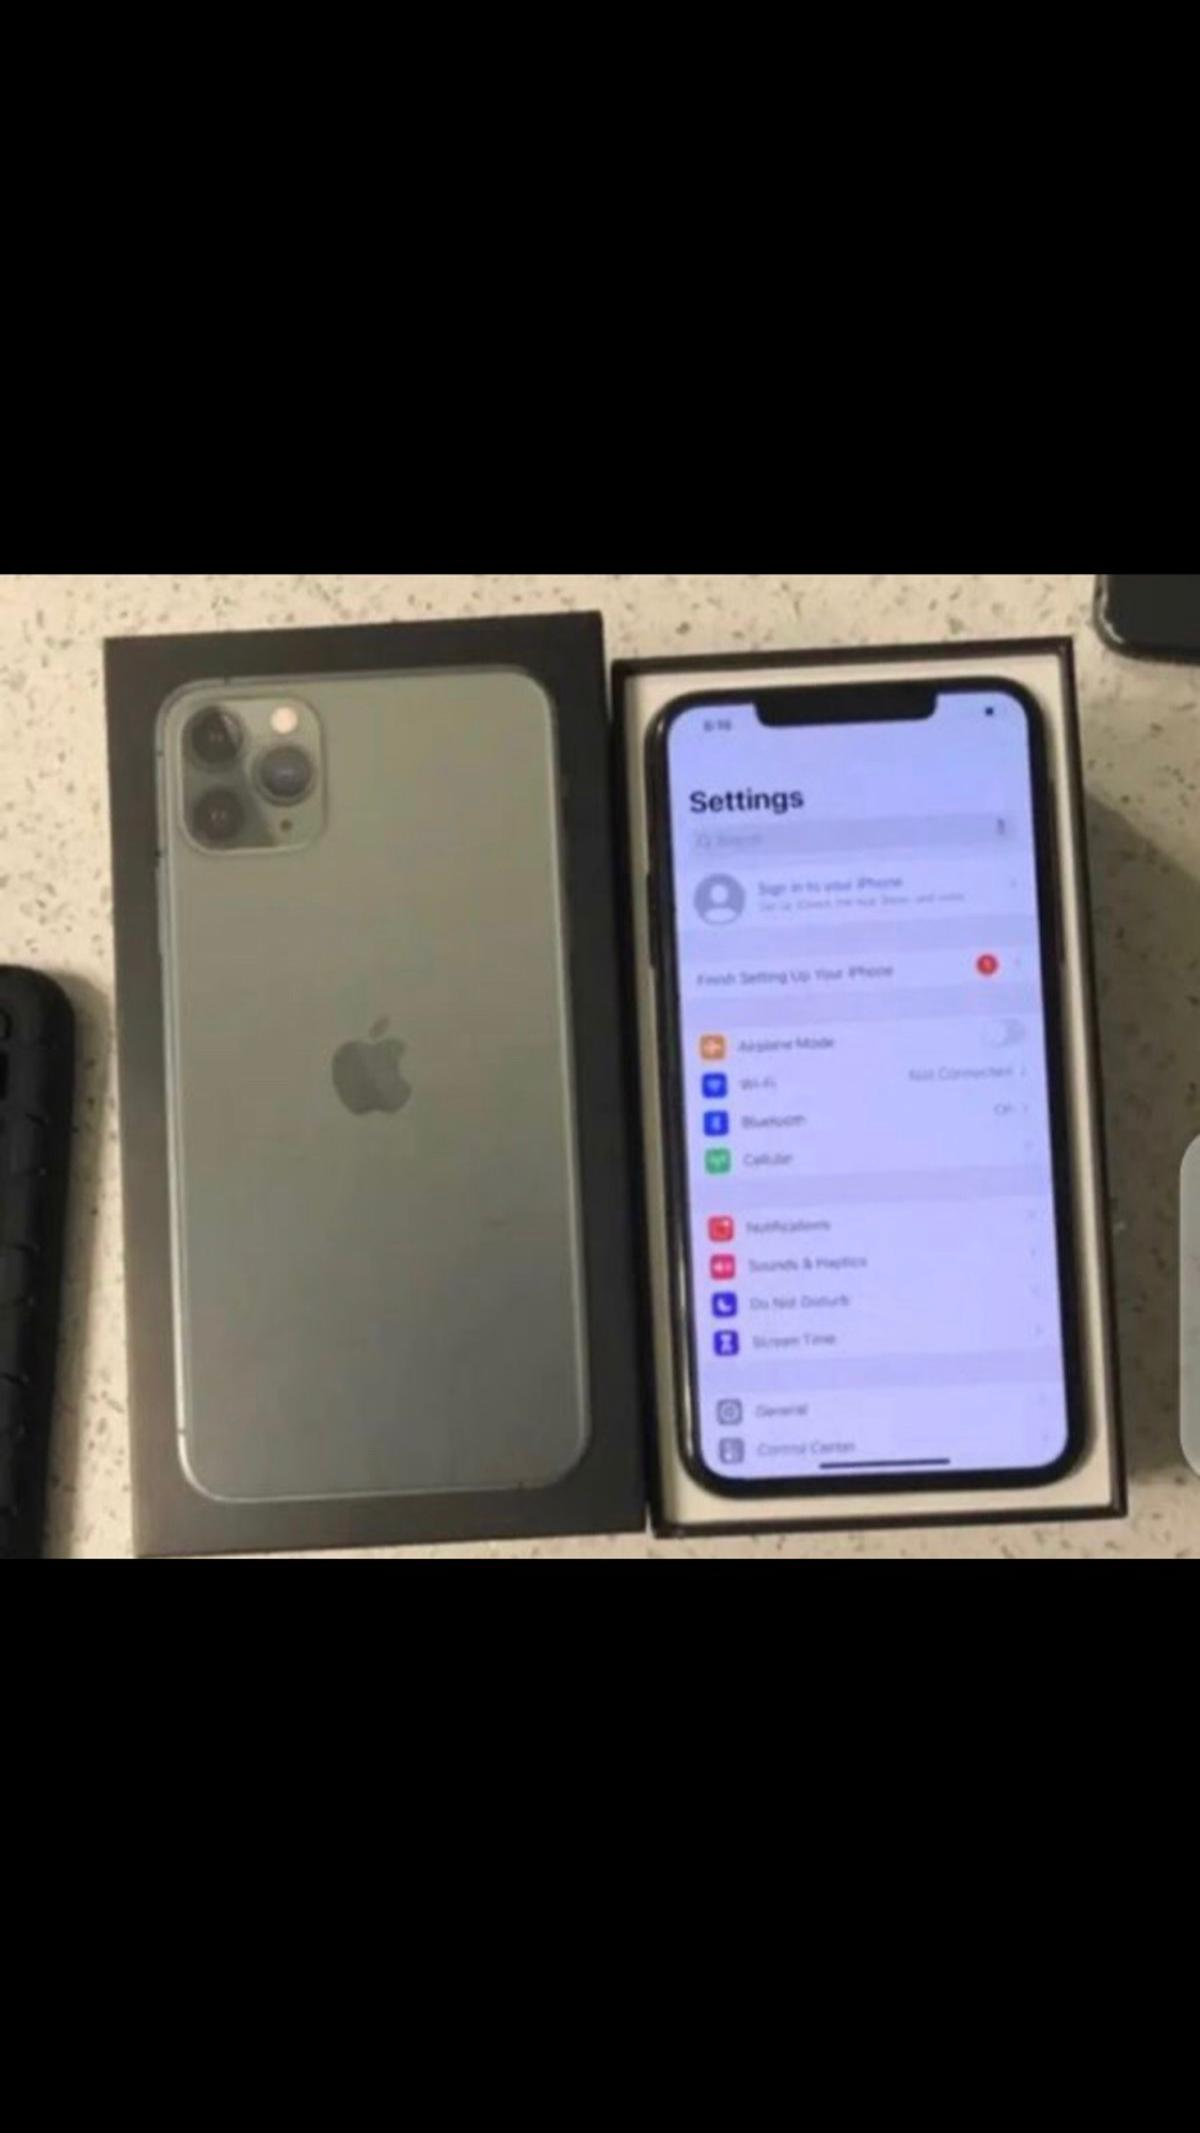 Iphone 11 Promax 256gb In 11746 Dix Hills For Us 500 00 For Sale Shpock